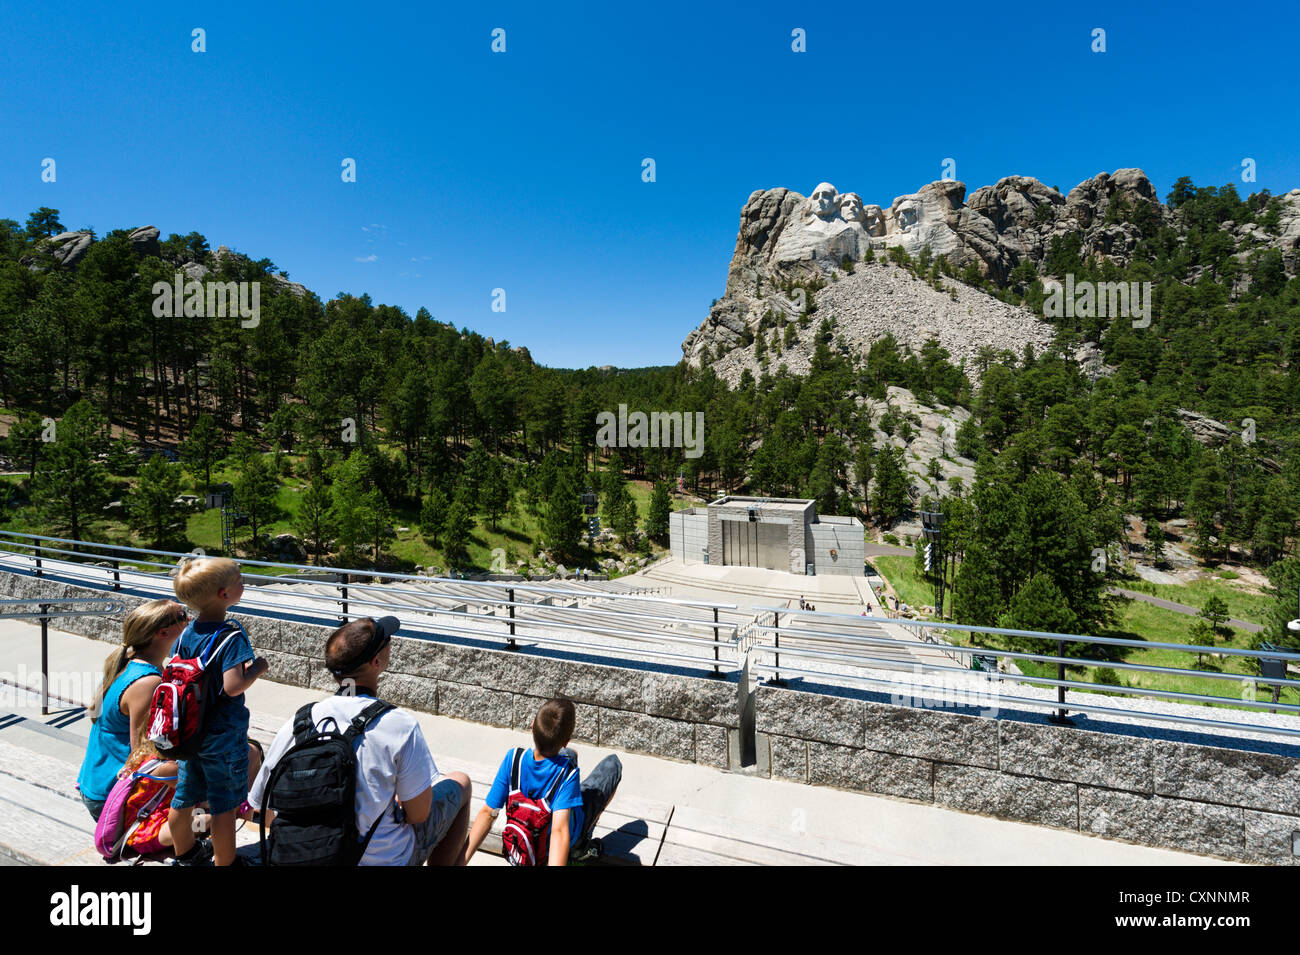 Family on the Grand View Terrace at the Mount Rushmore National Memorial, Black Hills, South Dakota, USA - Stock Image